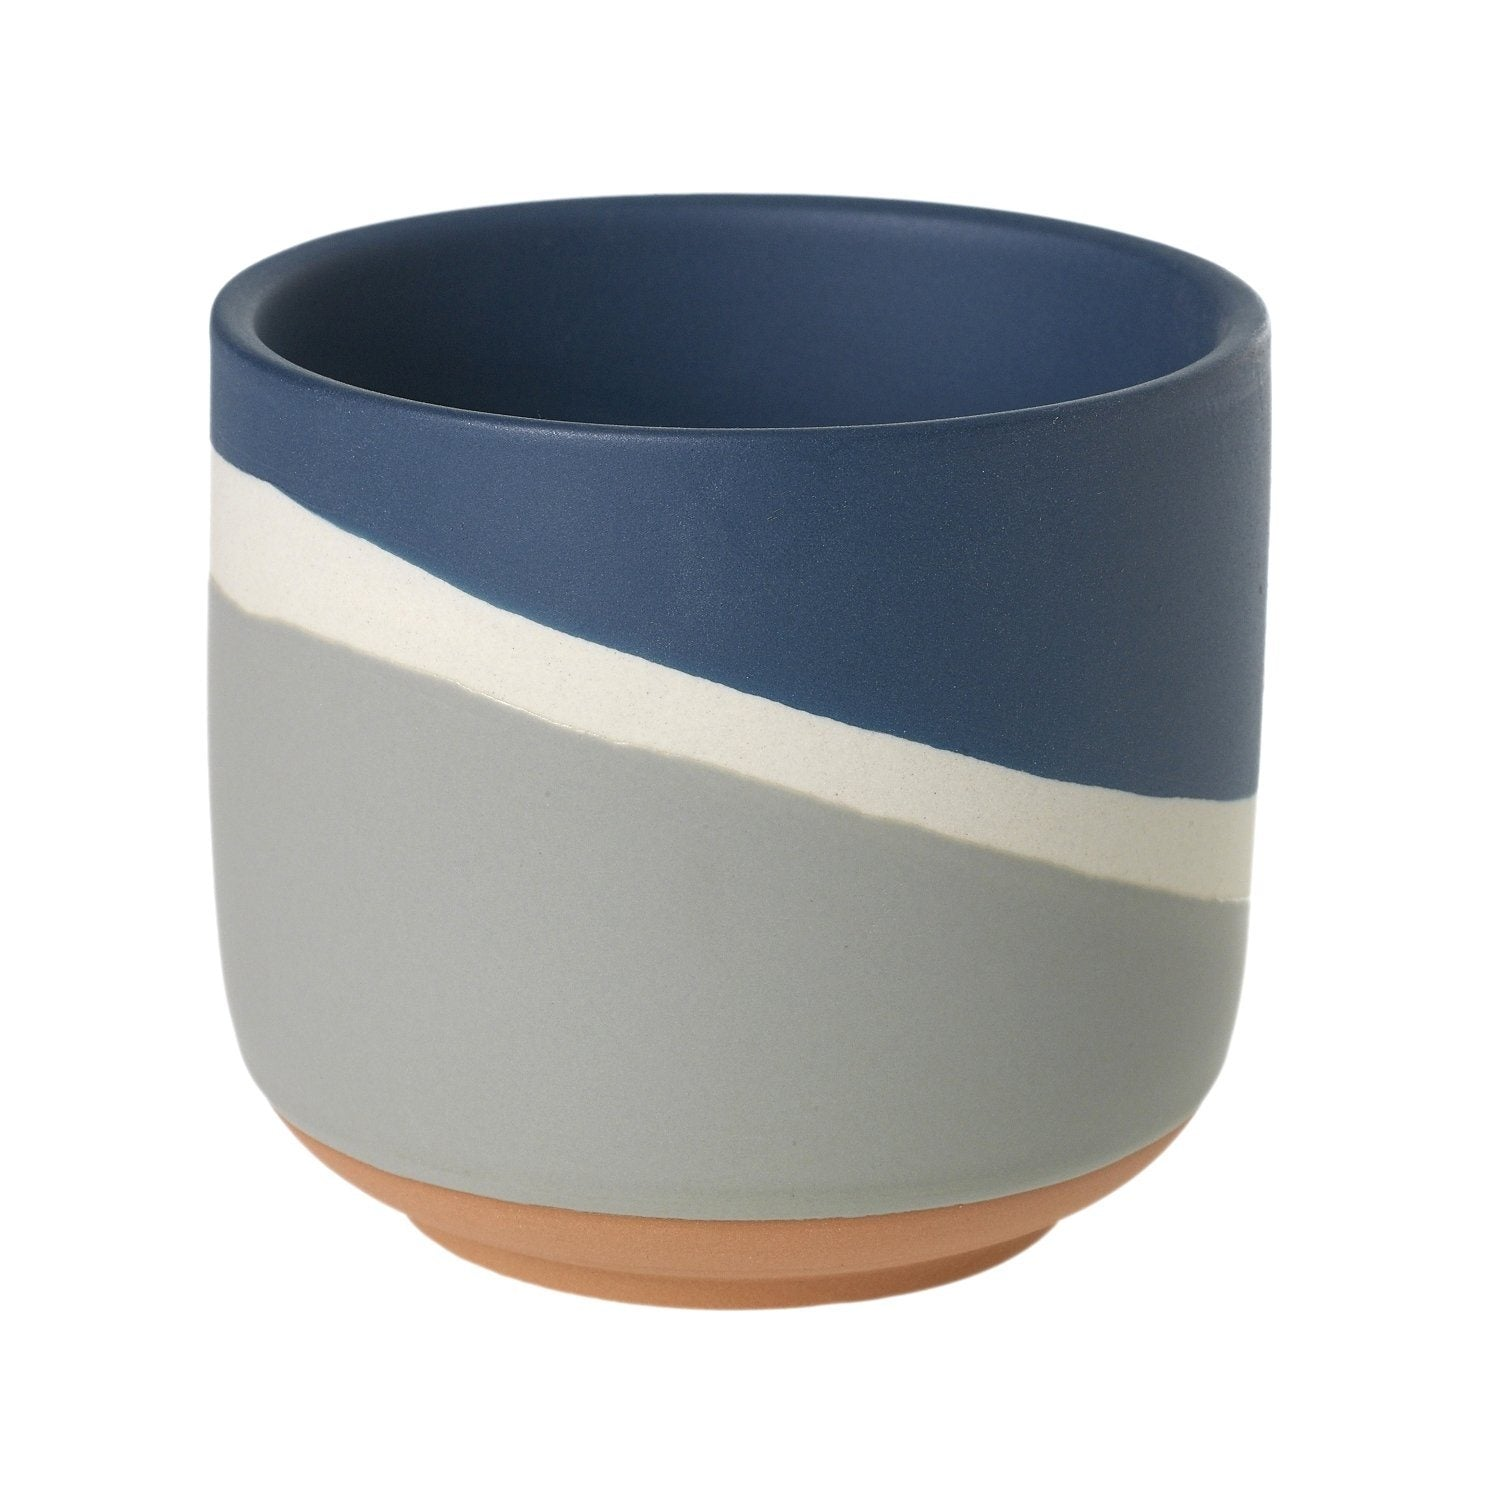 'Colorway' Pot